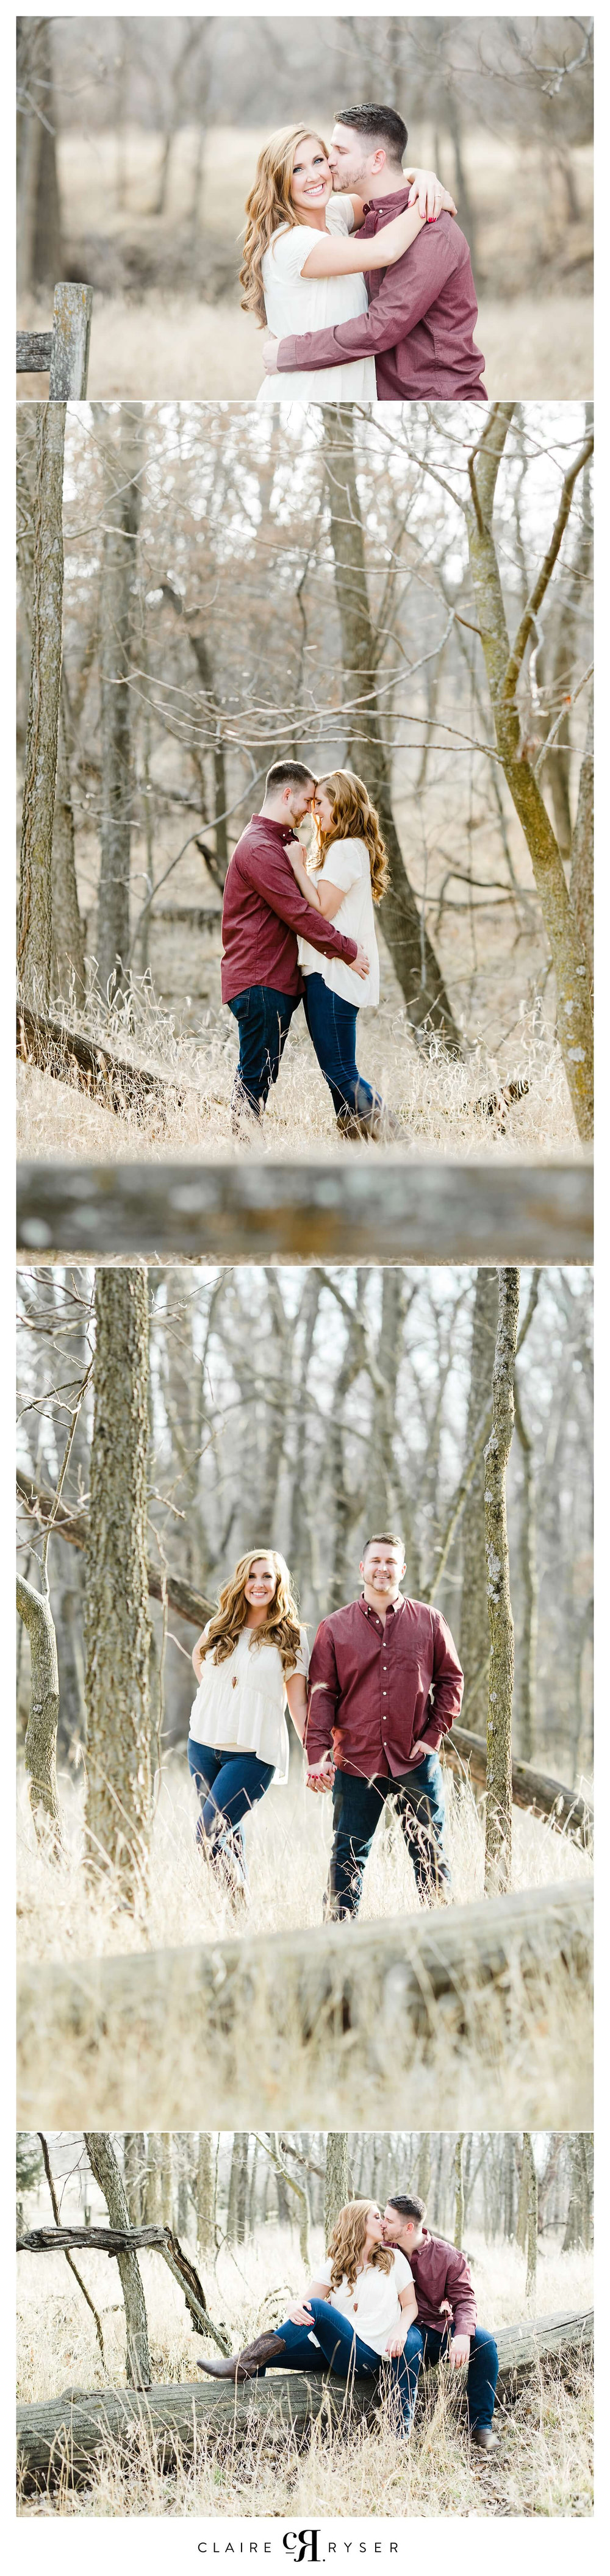 lake-pier-engagement-photos-dock-rustic-engagemen-photos-by-claire-ryser-01.JPG